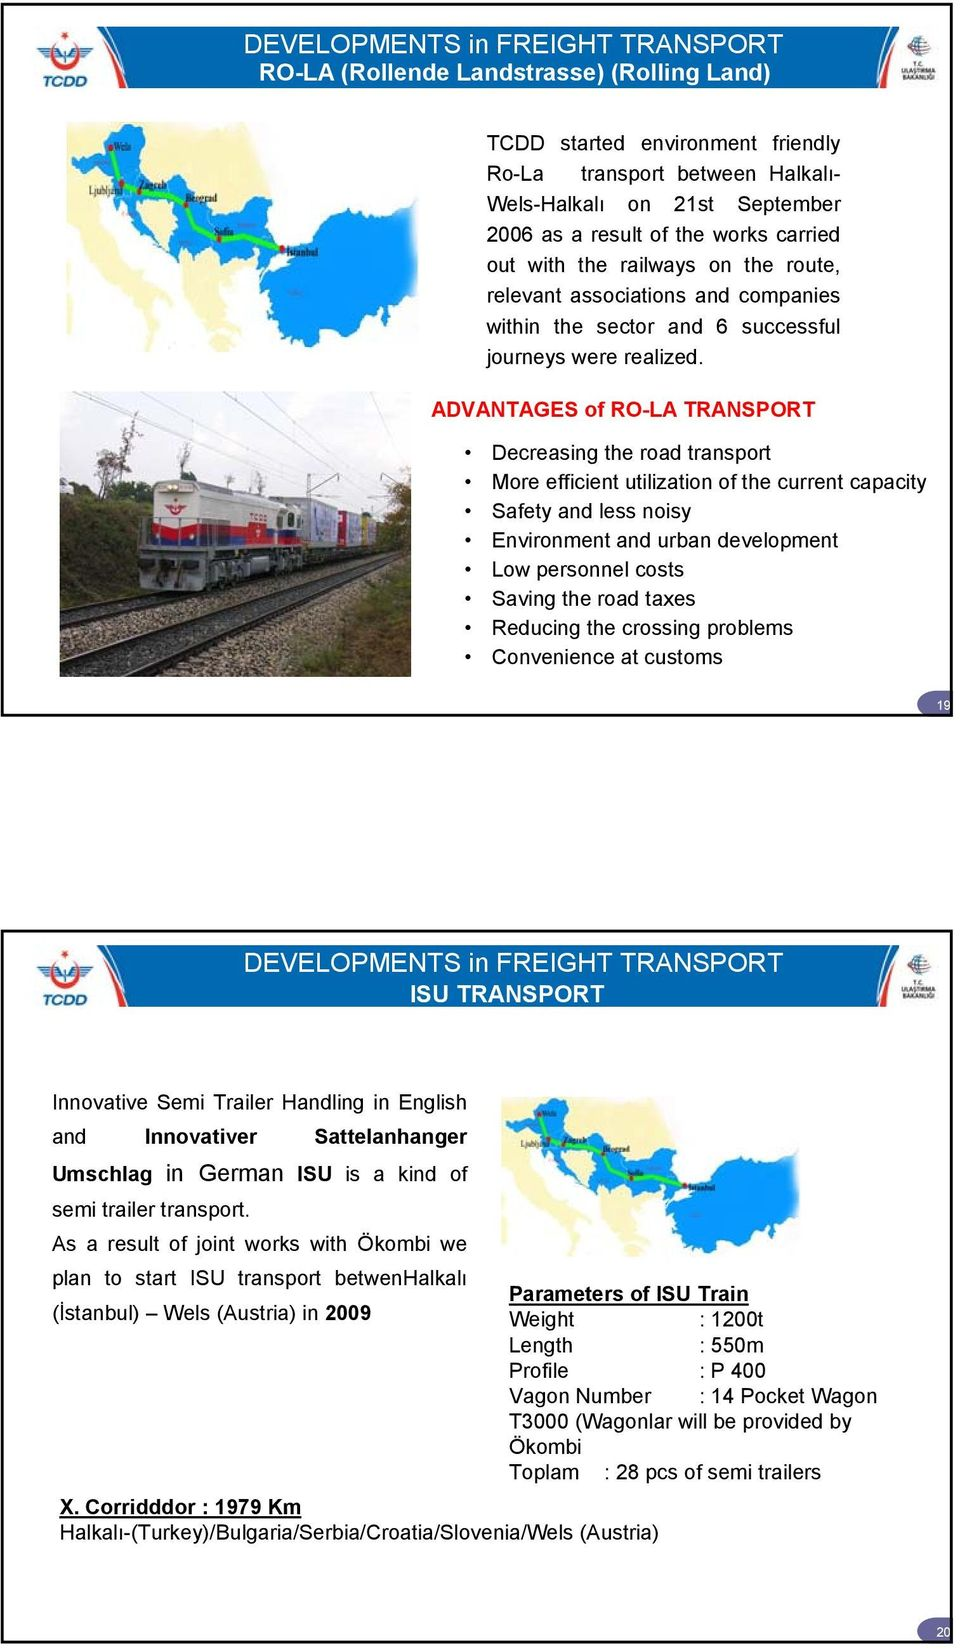 ADVANTAGES of RO-LA TRANSPORT Decreasing the road transport More efficient utilization of the current capacity Safety and less noisy Environment and urban development Low personnel costs Saving the